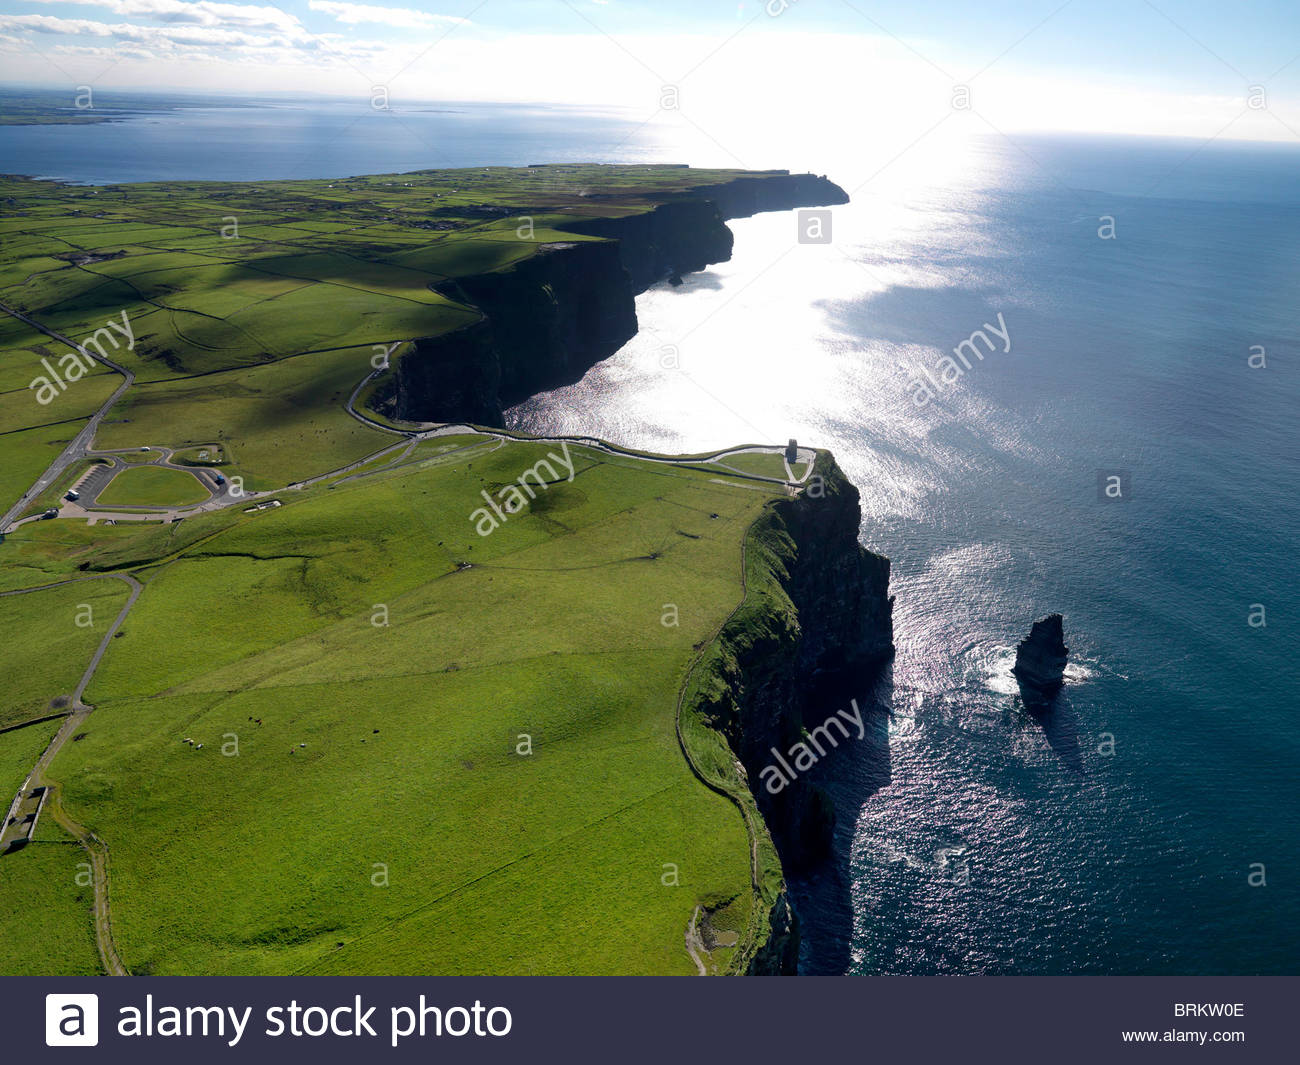 Aerial view of the Cliffs of Moher on the West coast of Ireland - Stock Image